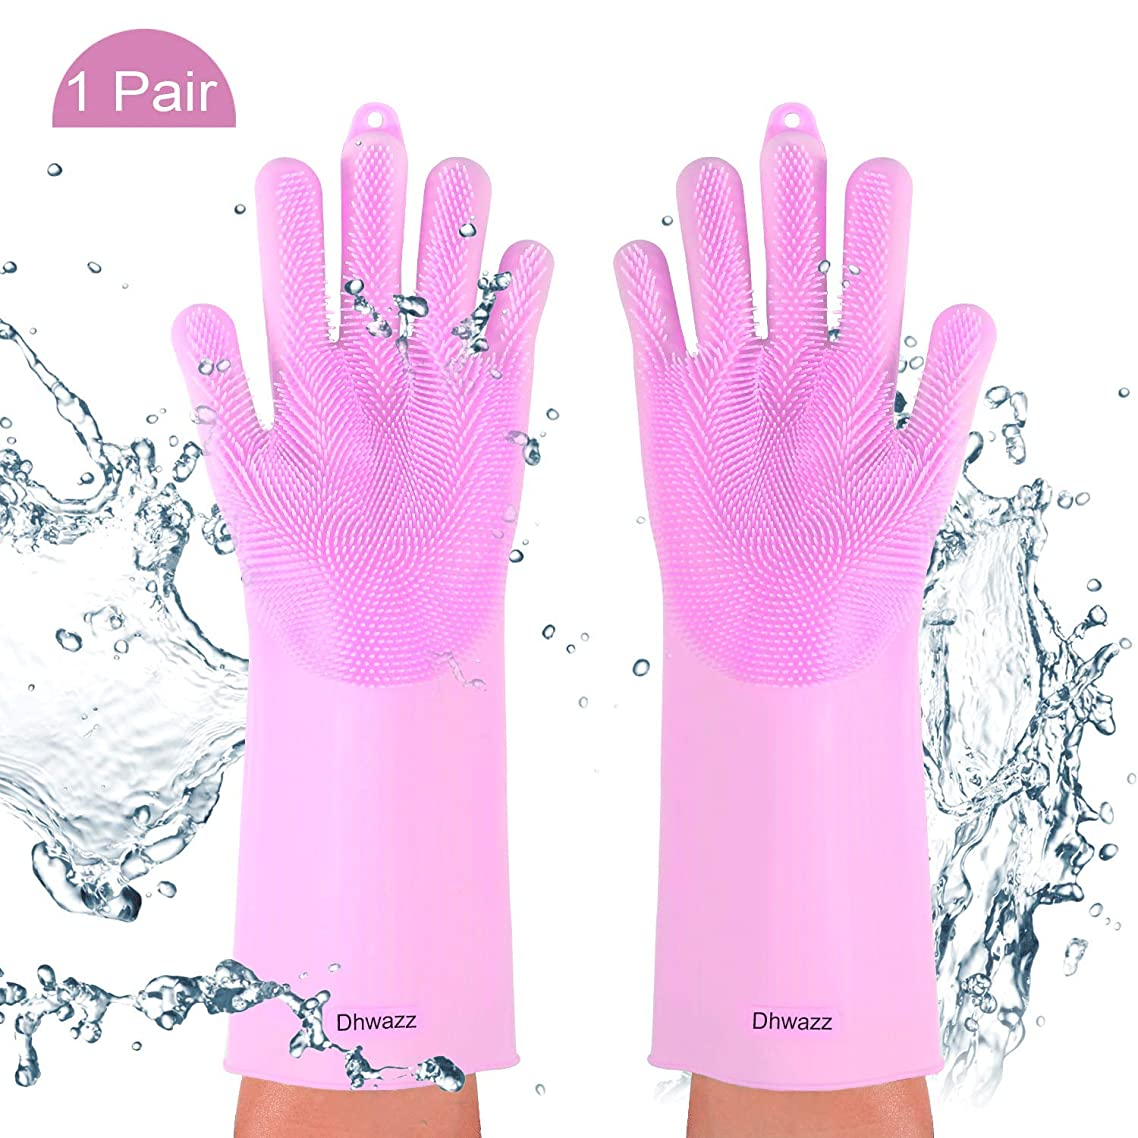 Dhwazz Silicone Washing Gloves, Magic Reusable Scrubber Dish Brush Heat Resistant Kitchen Tool for Cleaning, Pet Hair Care, Dish Washing, Washing The Car (Pink)